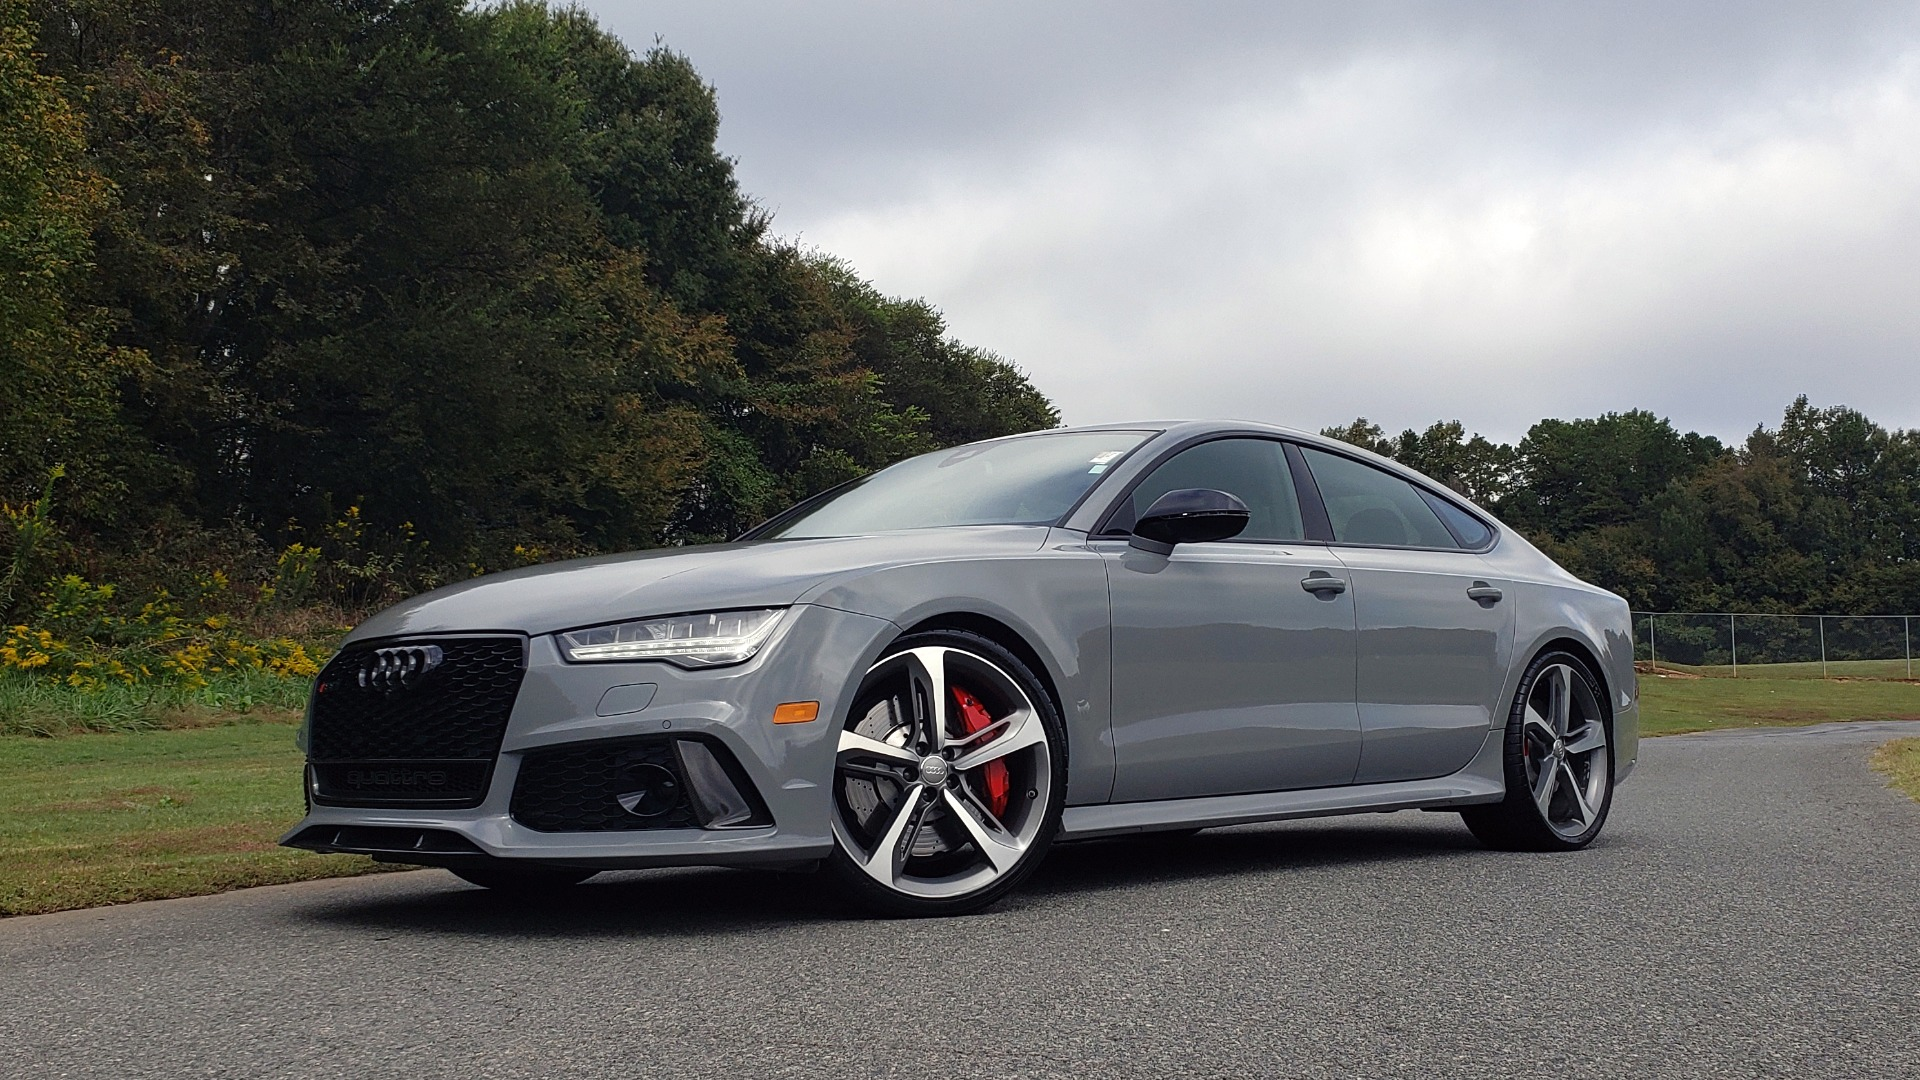 Used 2018 Audi RS 7 for sale Sold at Formula One Imports in Charlotte NC 28227 1